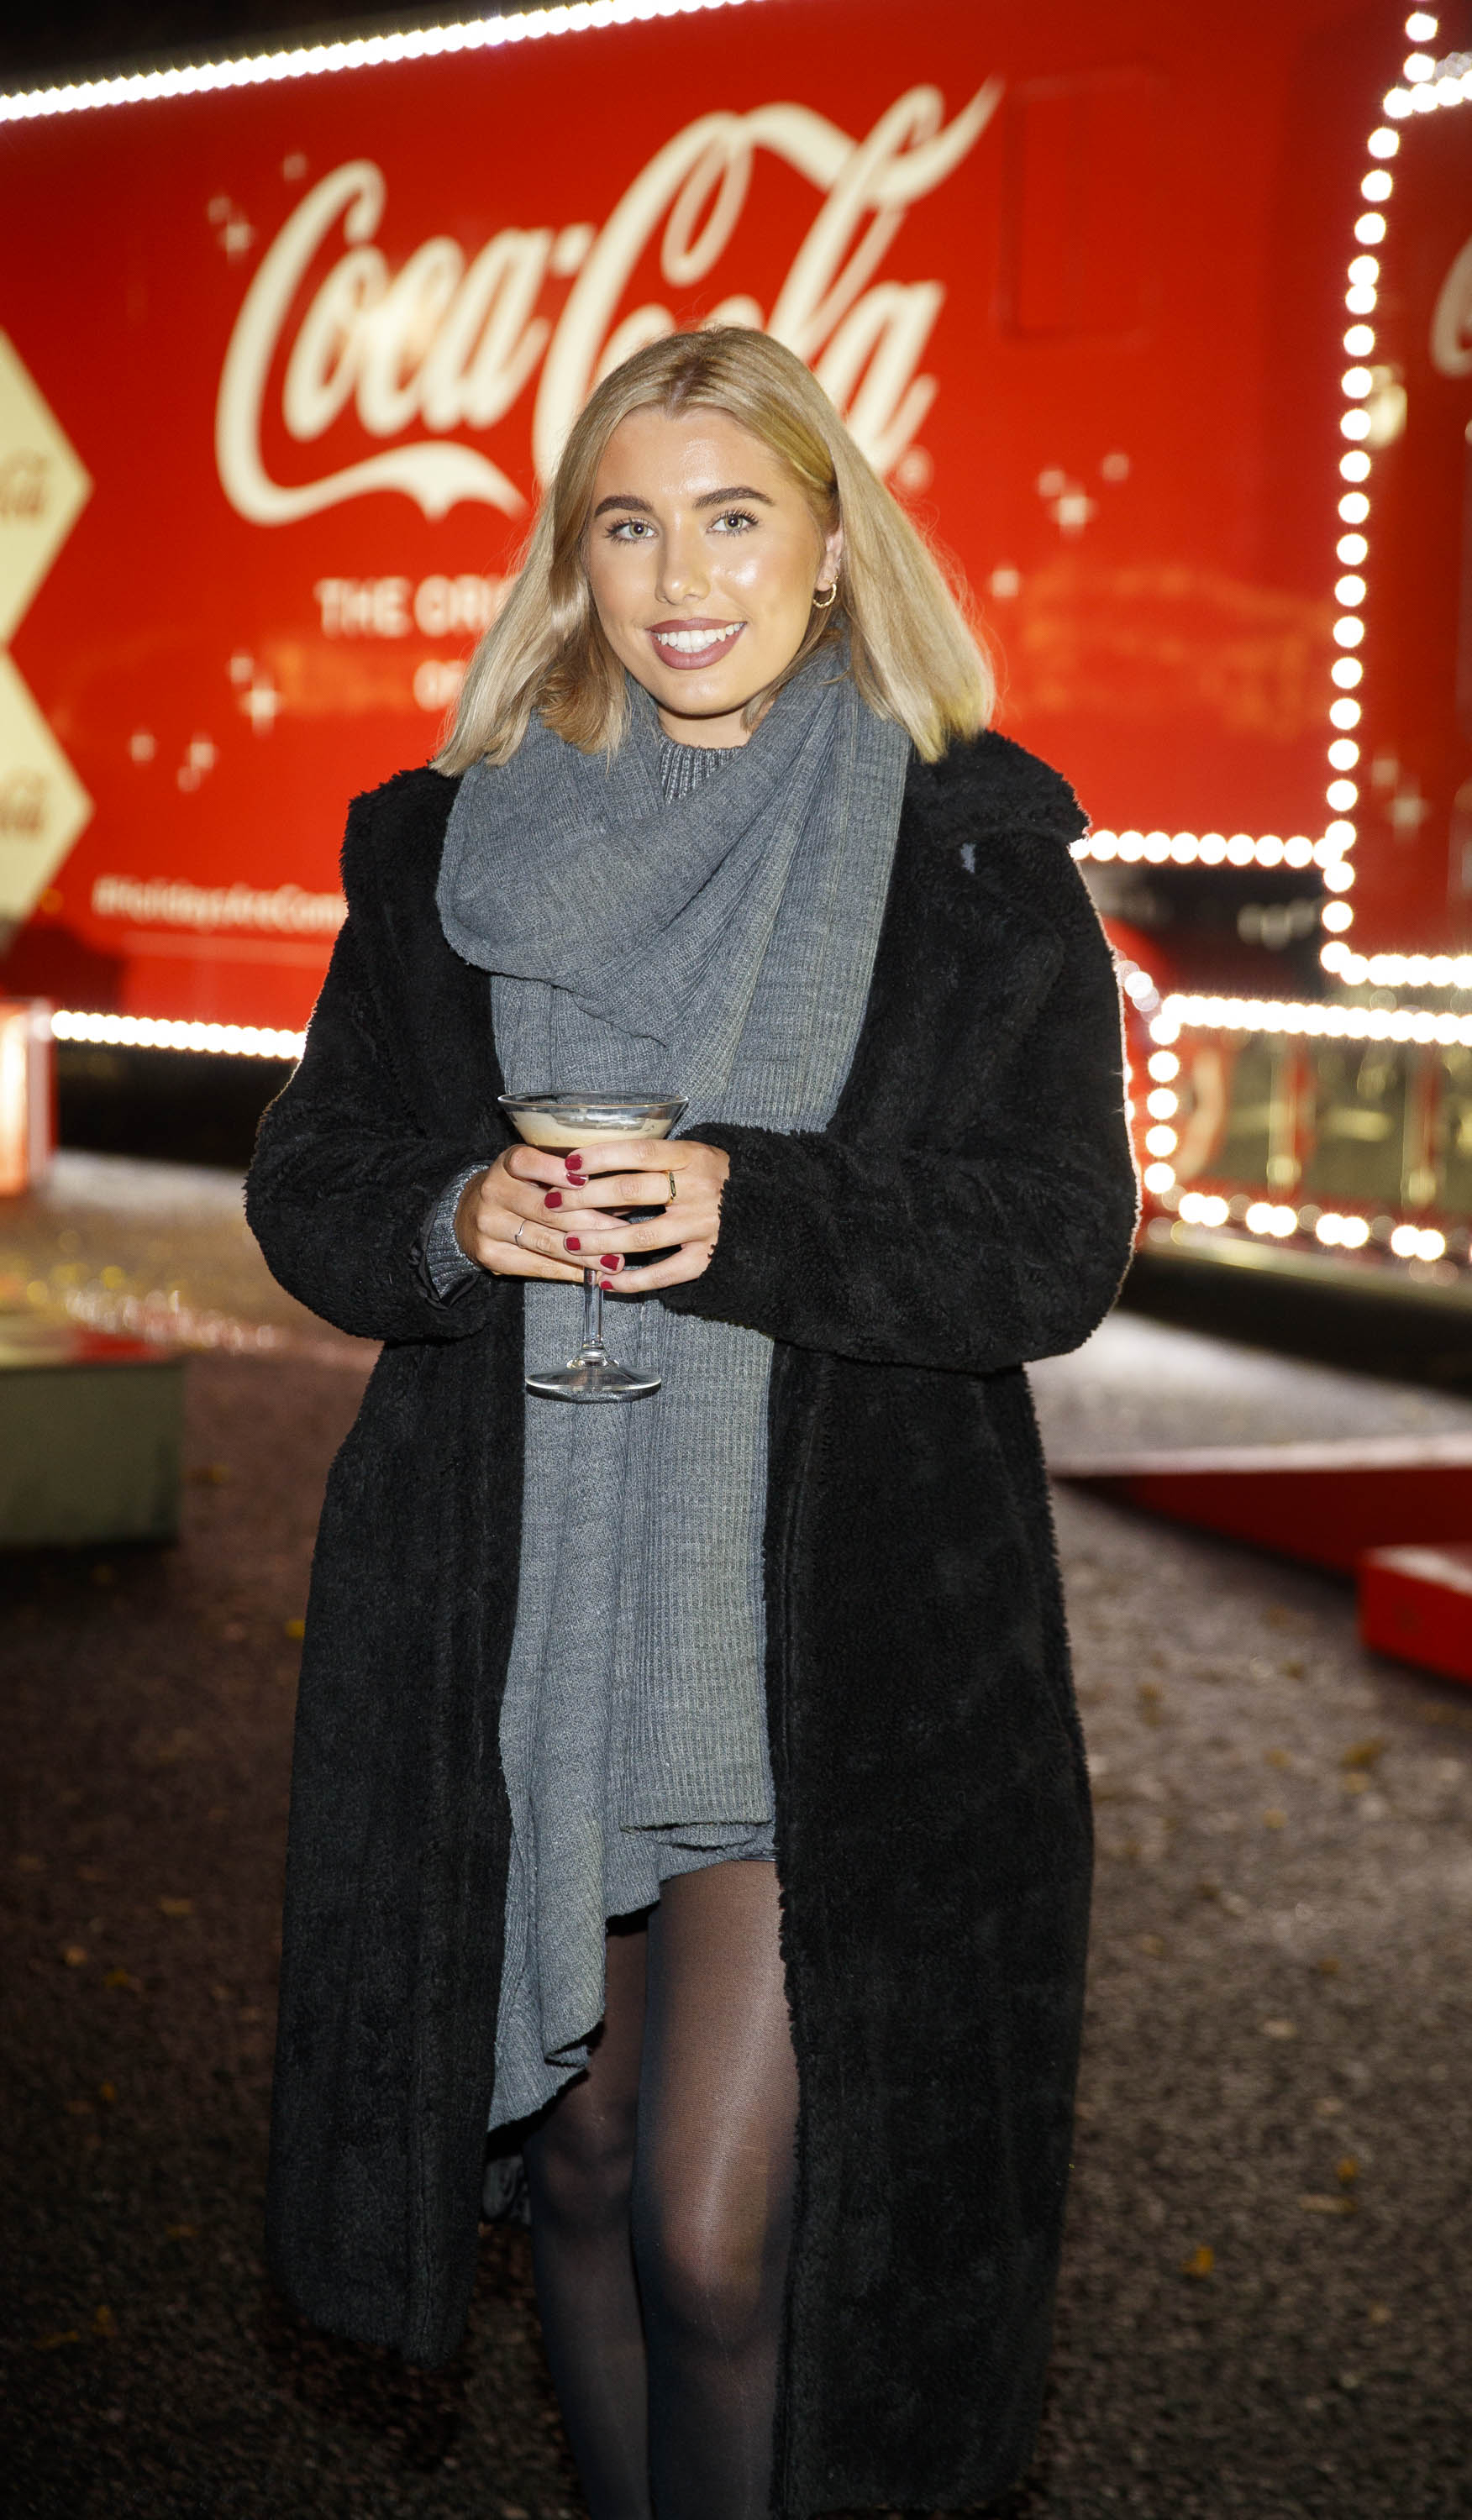 Katie Andrew pictured at Coca-Cola's Christmas Truck Tour launch which took place Monday 25th November at the RDS, Dublin. Photo: Andres Poveda